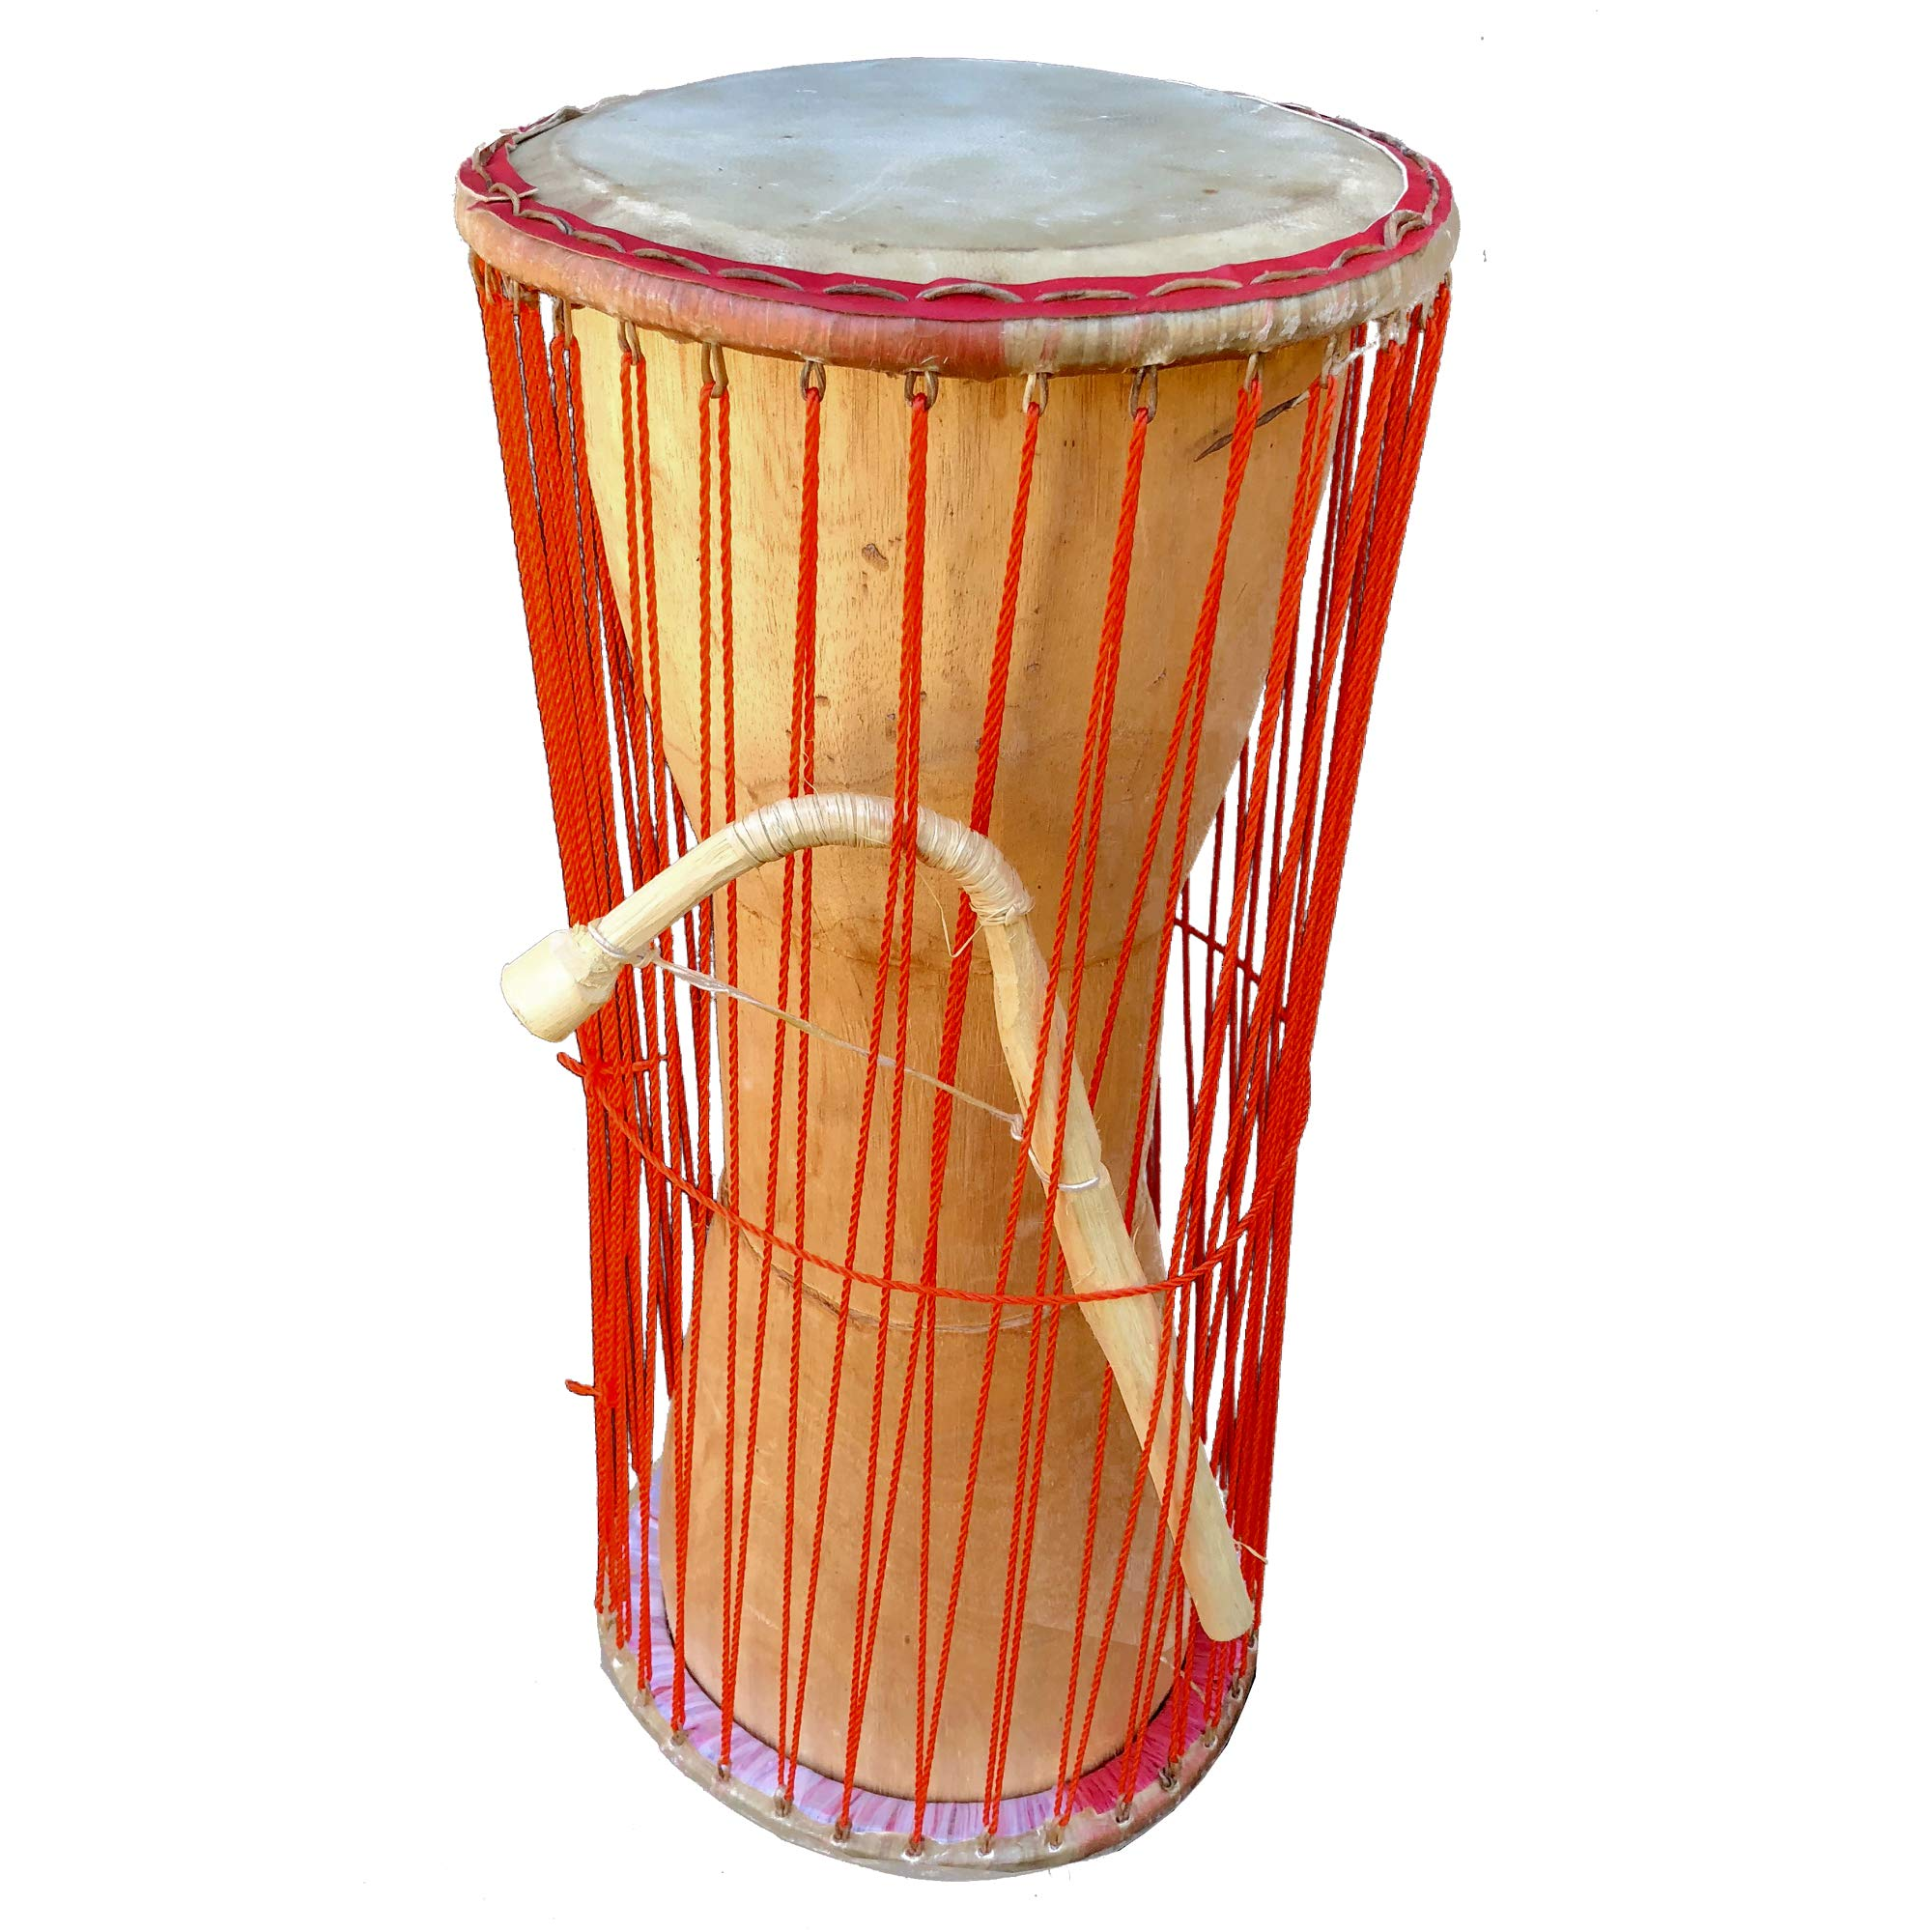 Classic Heartwood Dondo Talking Drum with stick - Large (8''x18'') - Ghana